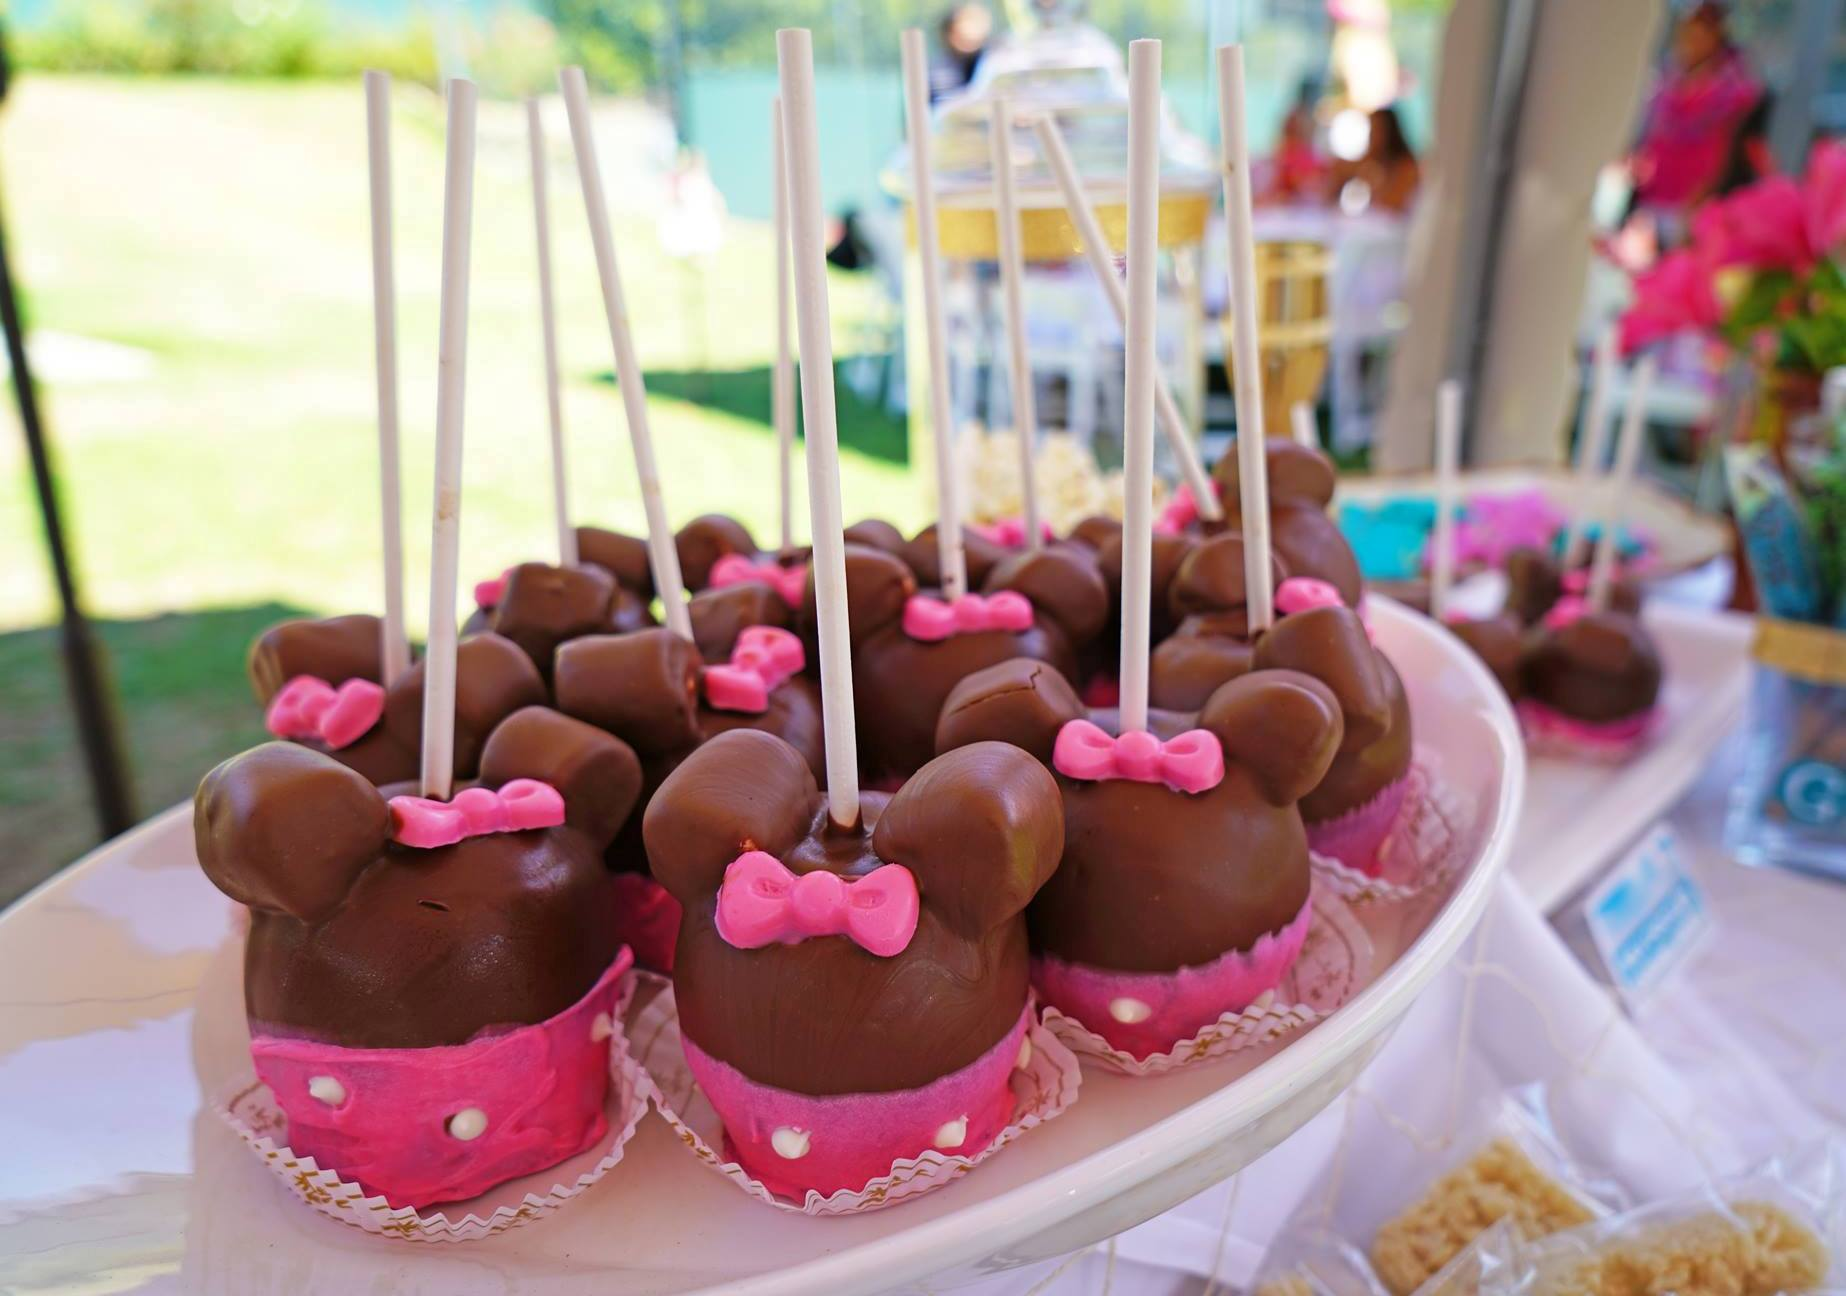 Minnie mouse caramel chocolate apples